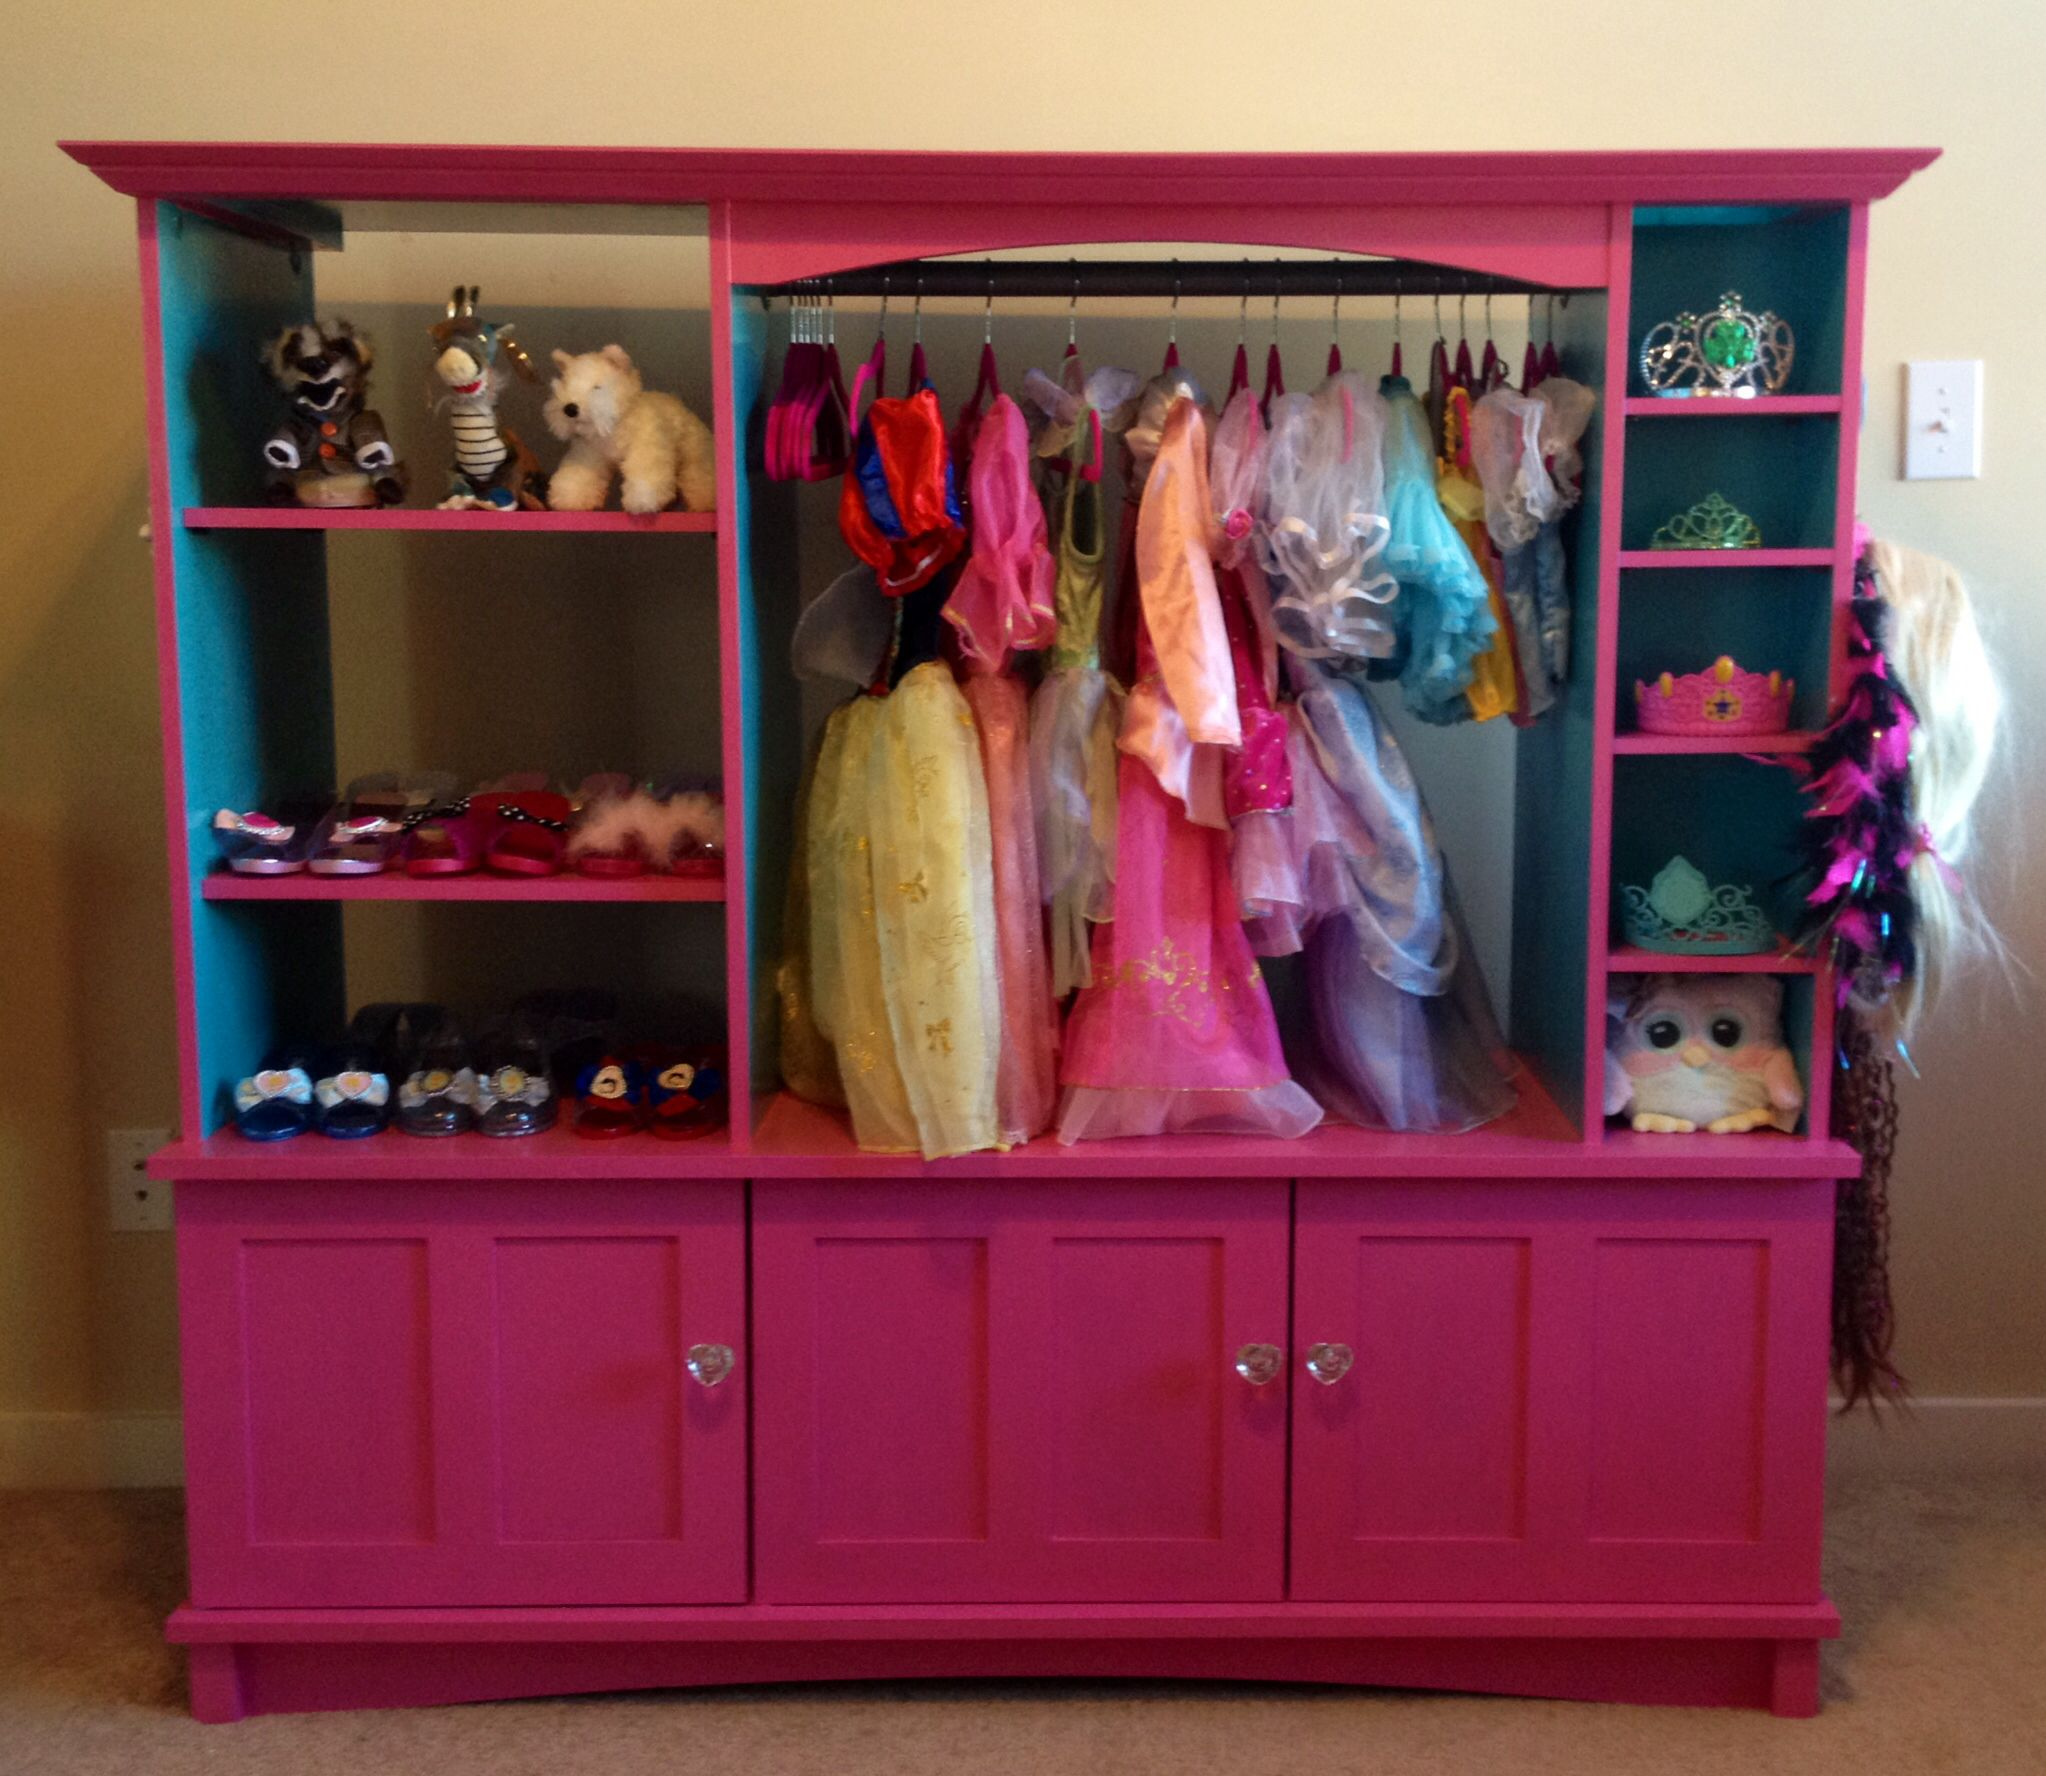 dress up closet made out of an old entertainment center  abbey's  - dress up closet made out of an old entertainment center